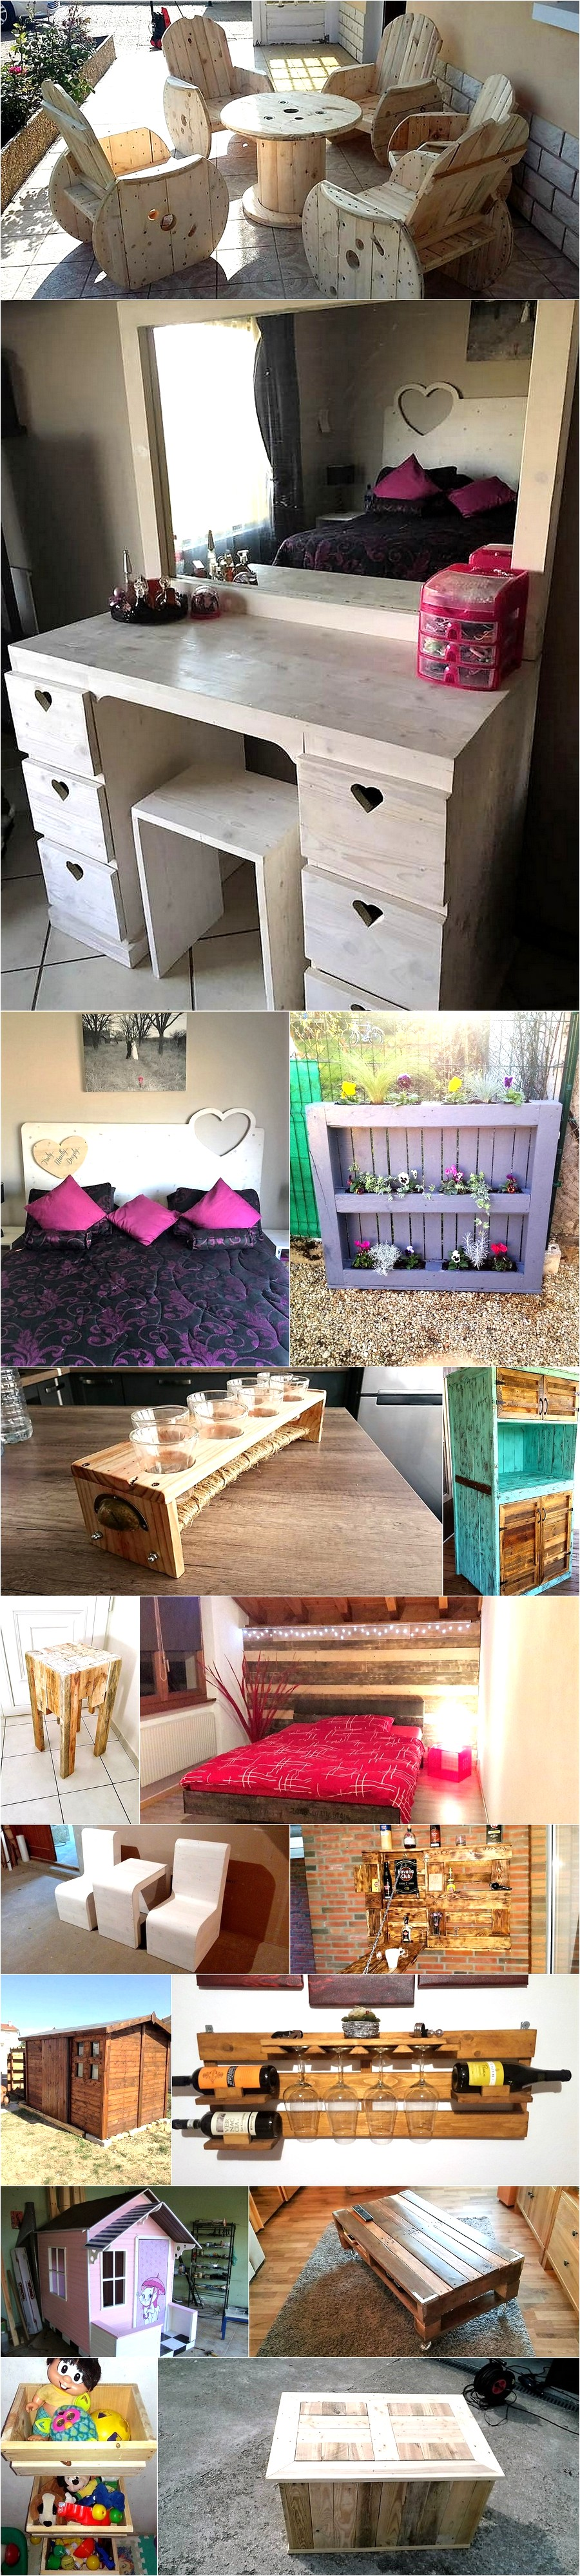 recycling-ideas-for-wooden-pallets